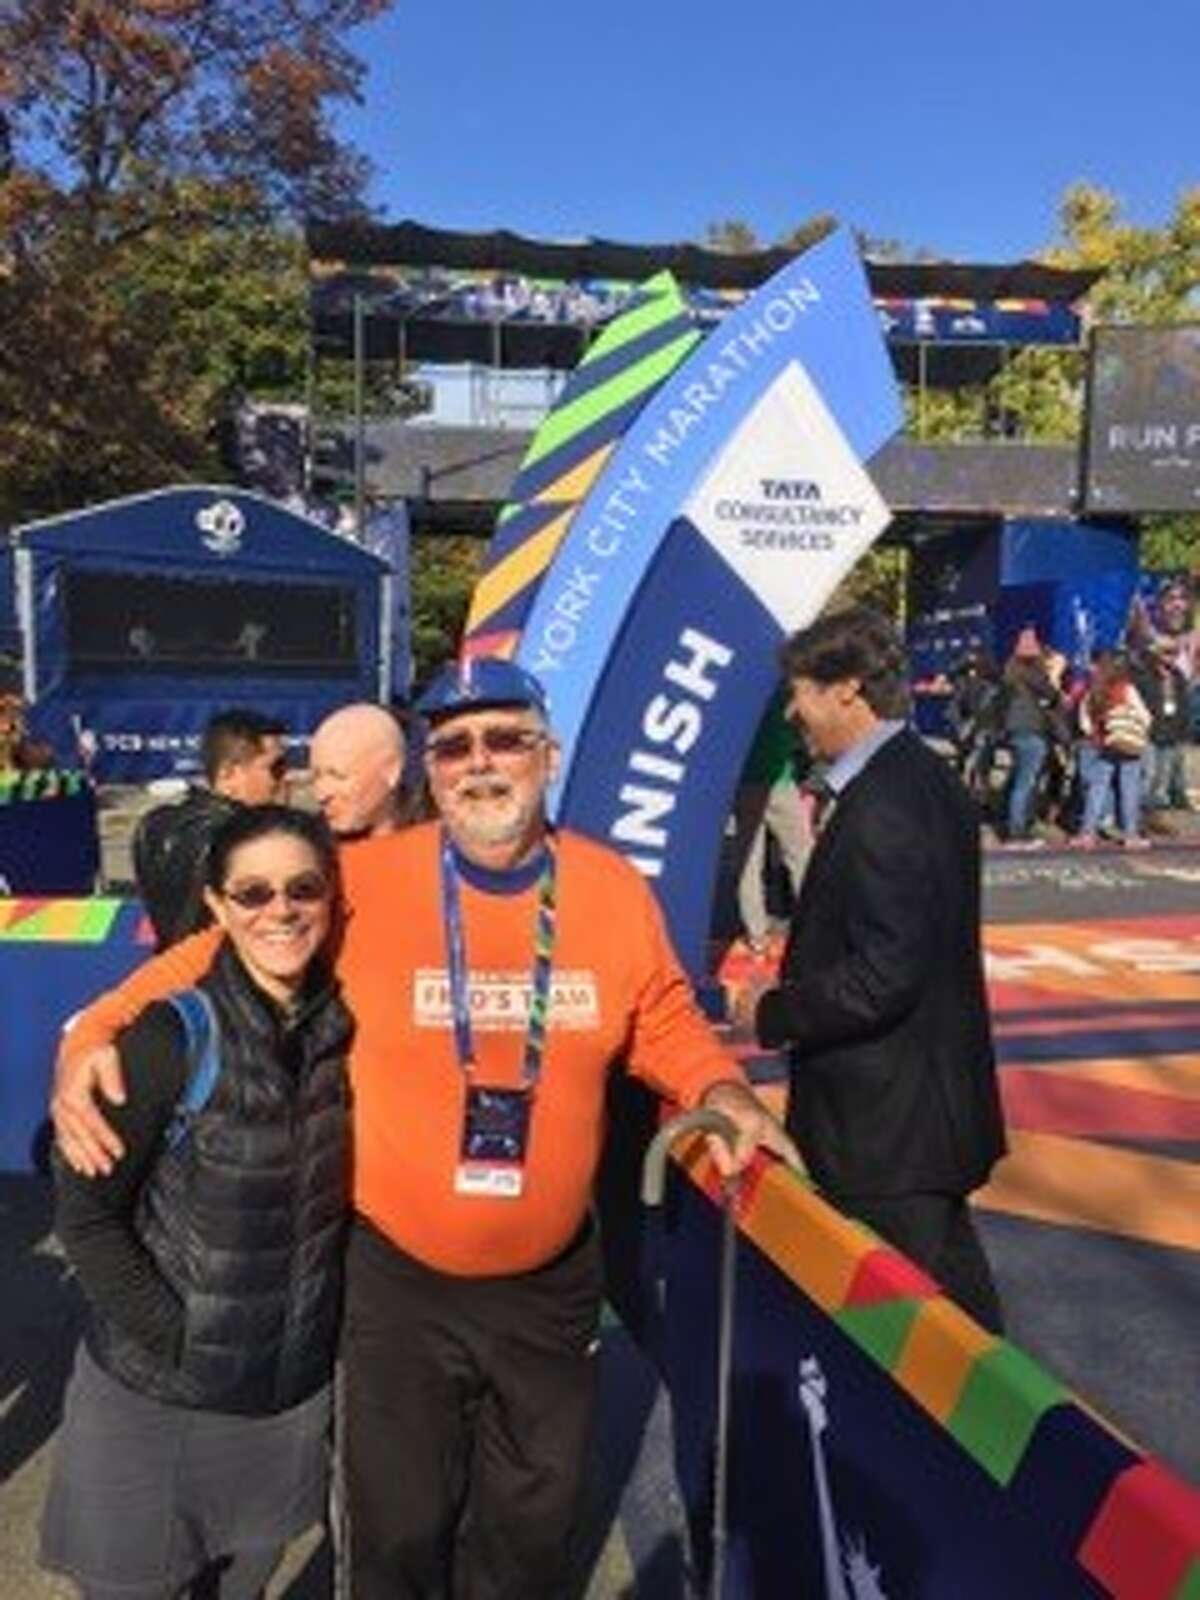 The Rev. Don Paine, a minister and Albany therapist who came back from being hit by a car and fracturing his pelvis, crossed the finish line of the New York City Marathon on Saturday for his 28th marathone completed in a unique fashion (Photo courtesy of Don Paine)